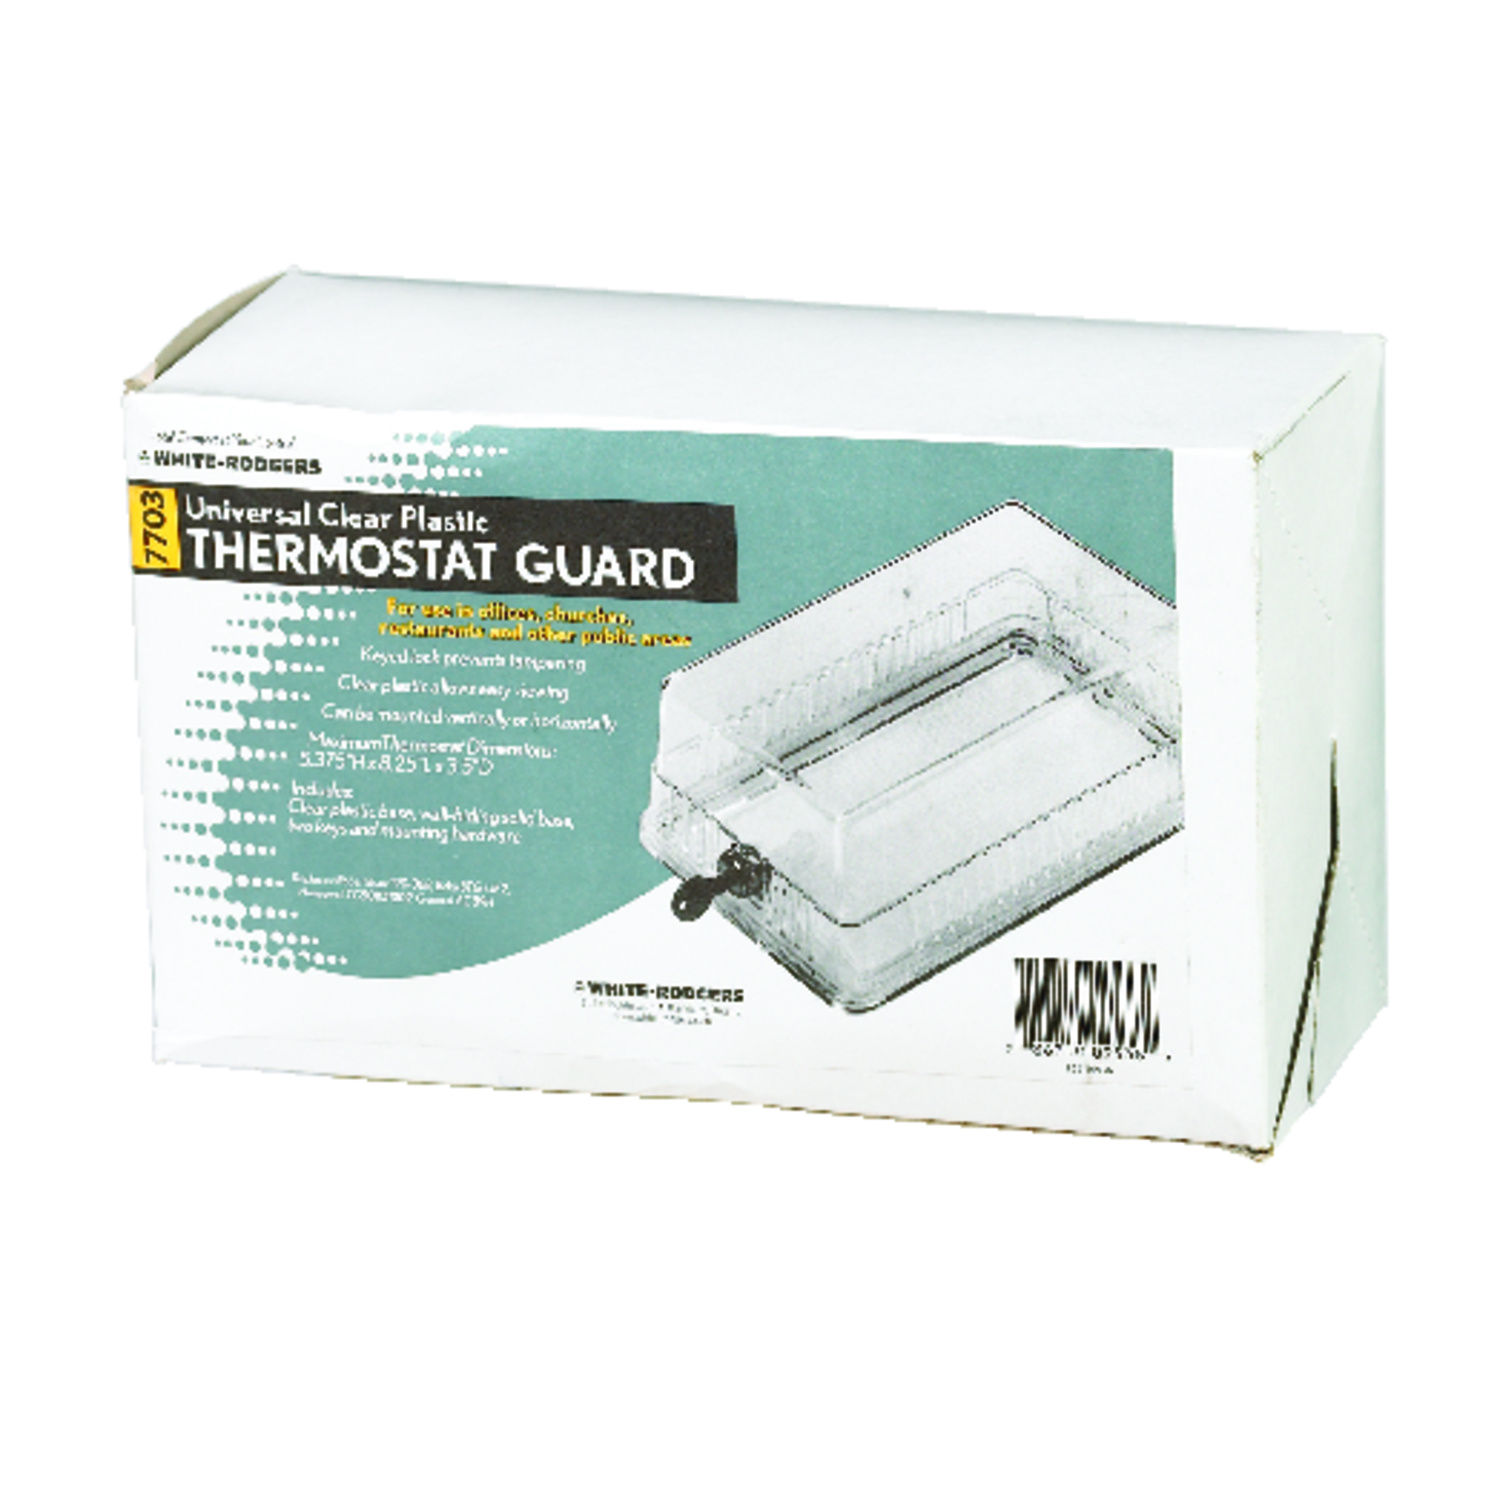 White Rodgers Heating and Cooling Lever Thermostat Guard Box The Large clear thermostat guard is a locking thermostat guard to protect your thermostat from unwanted tampering. This is the bigger of two thermostat guard models and is perfect to protect your large thermostat.